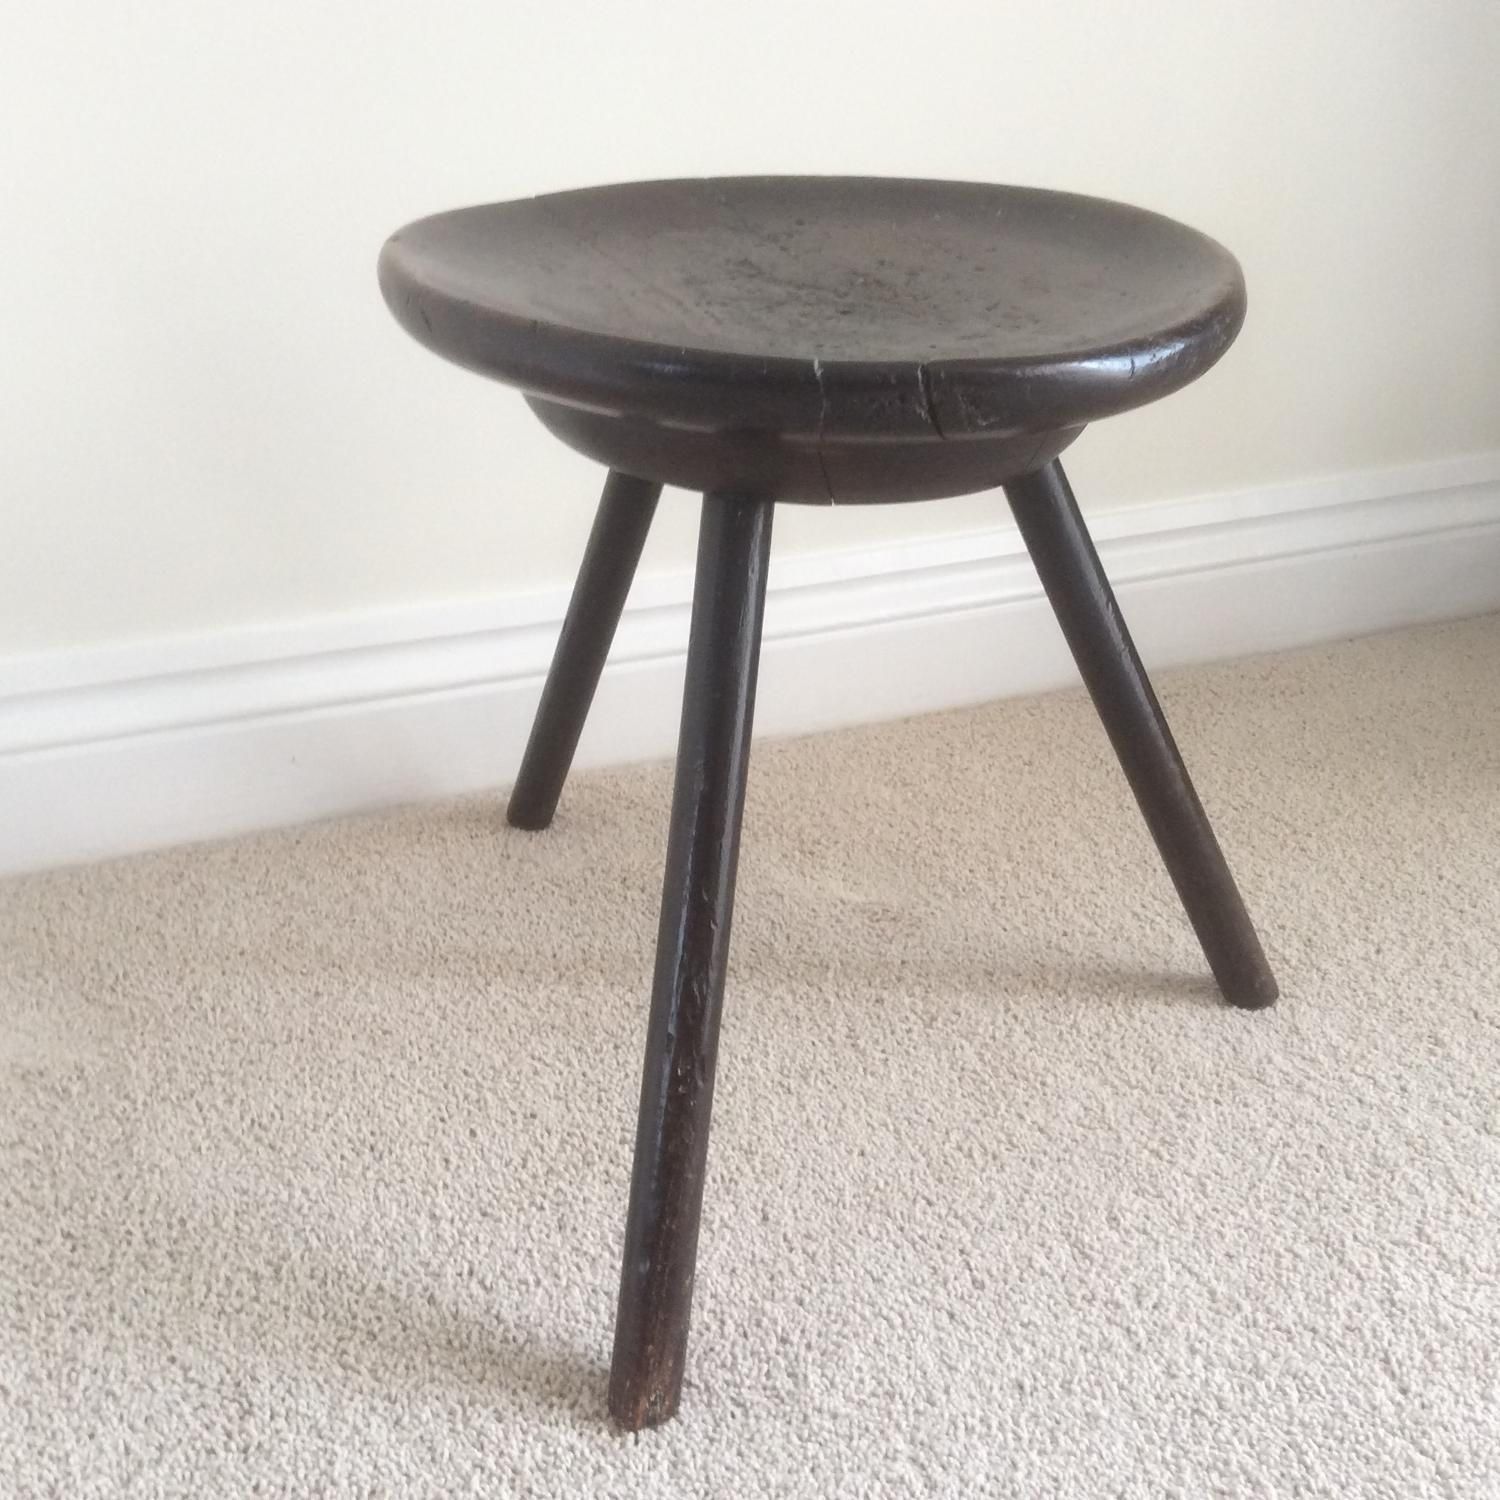 Welsh early 19th century  stool